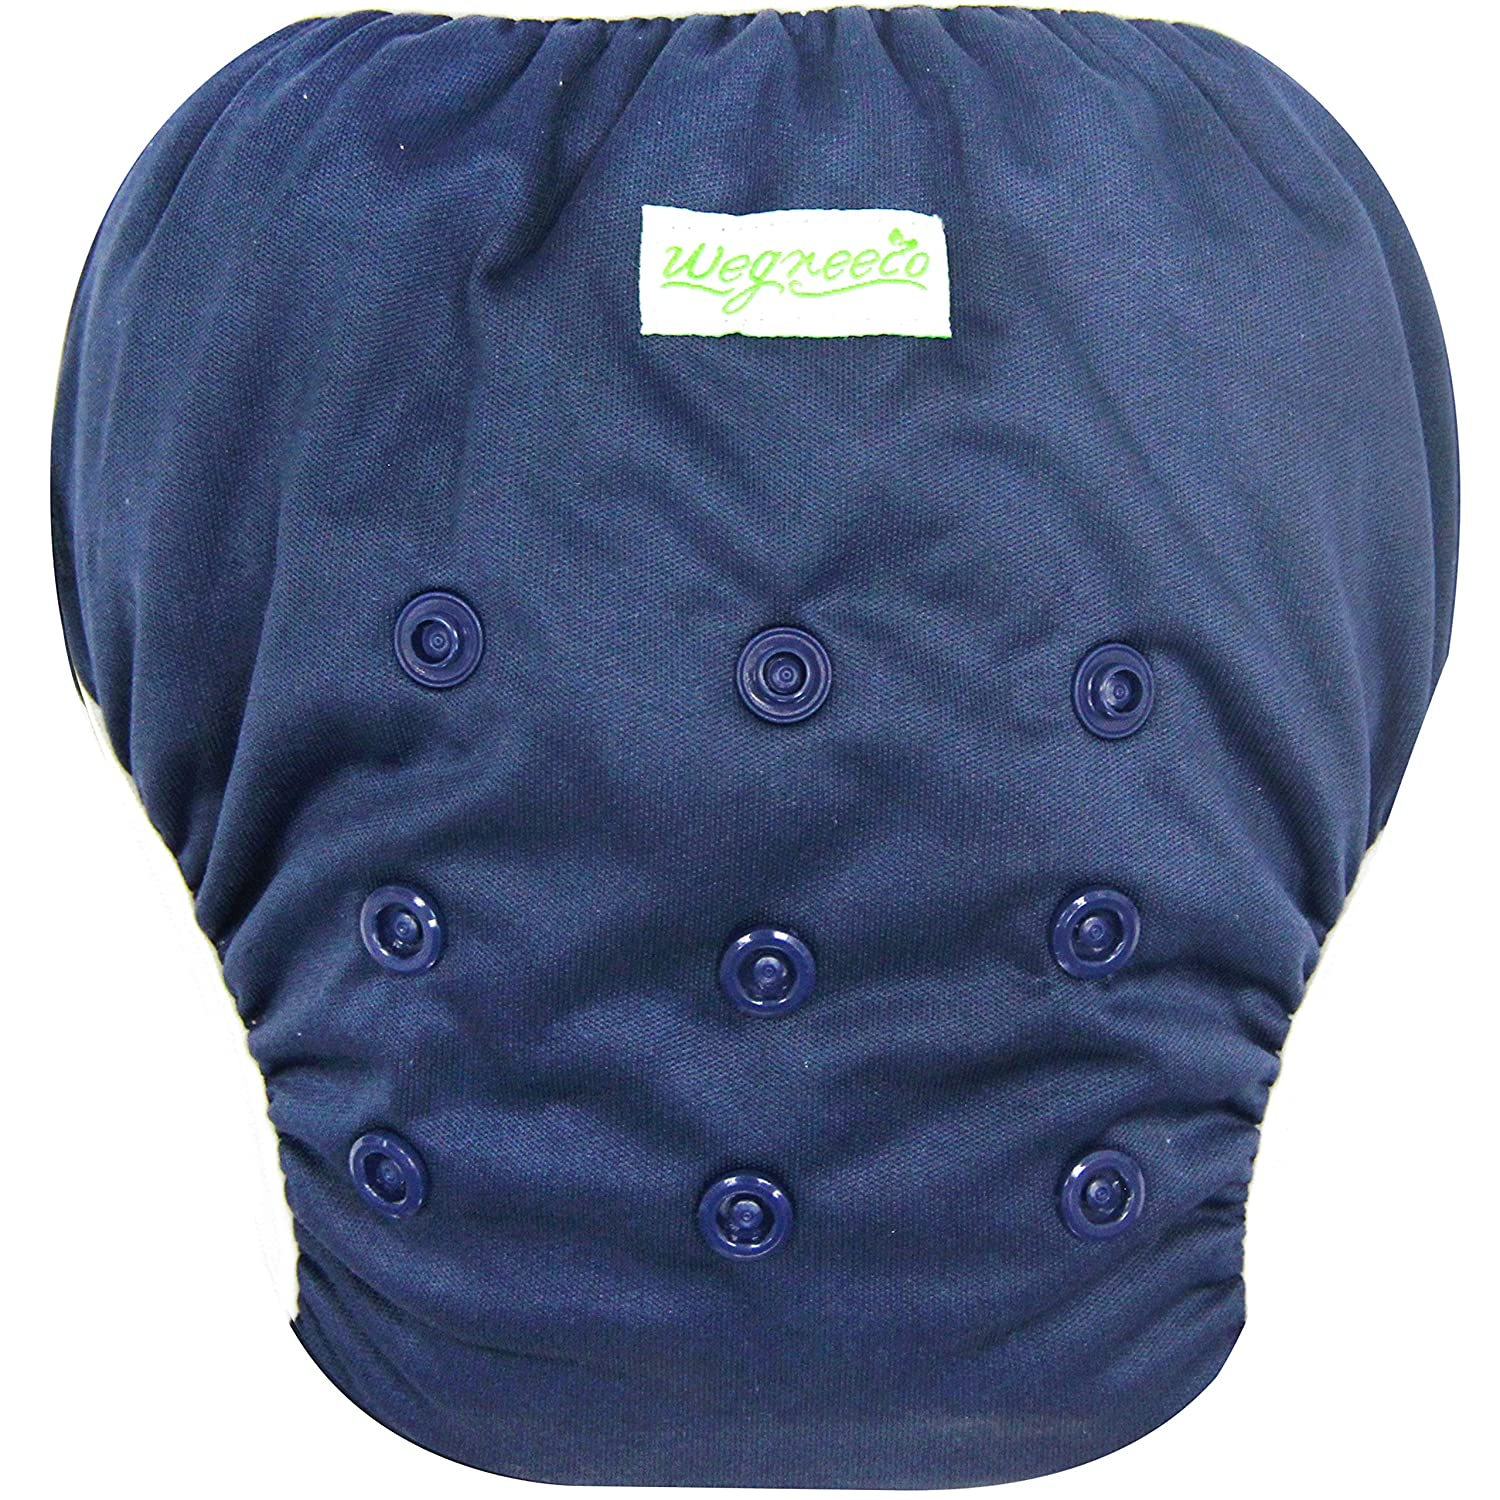 Wegreeco Baby & Toddler Snap One Size Adjustable Reusable Baby Swim Diaper (Navy,Small,3 Pack)